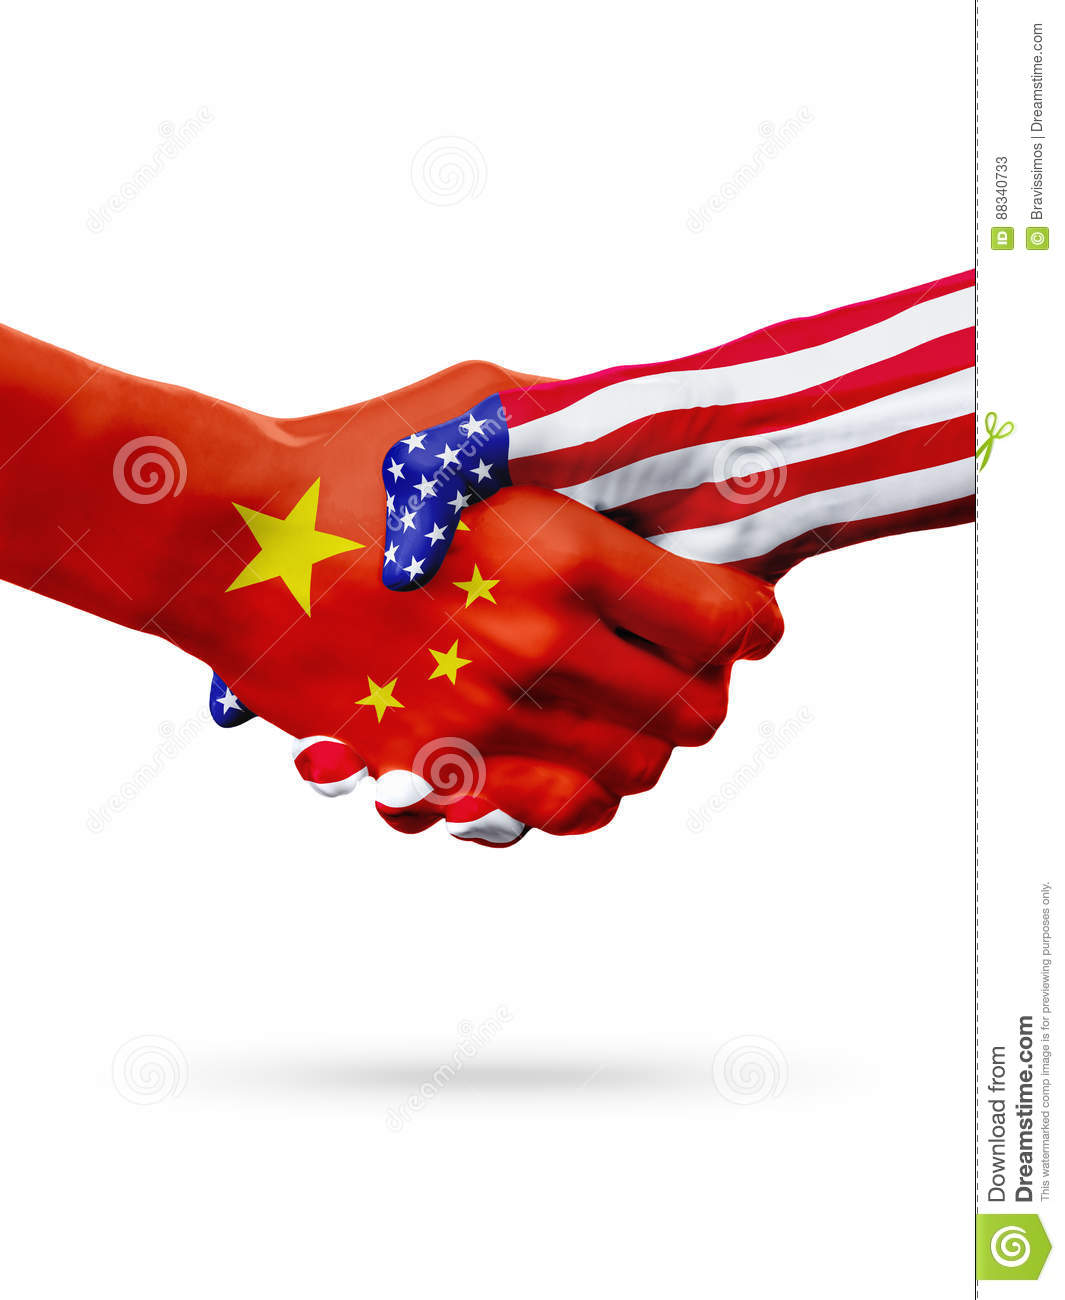 china united states economic relationship between countries